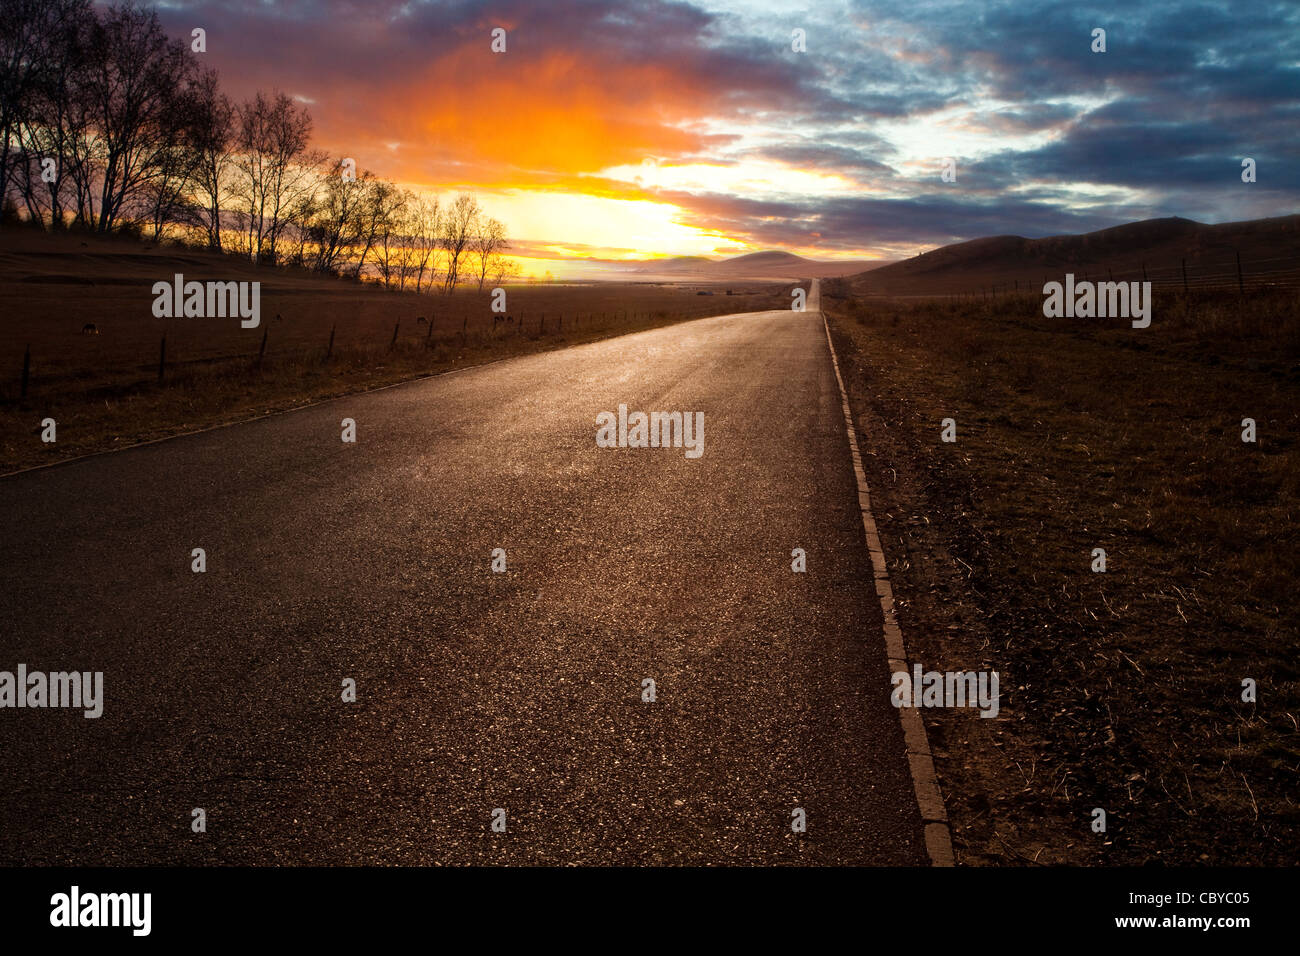 Sunset by a country road - Stock Image